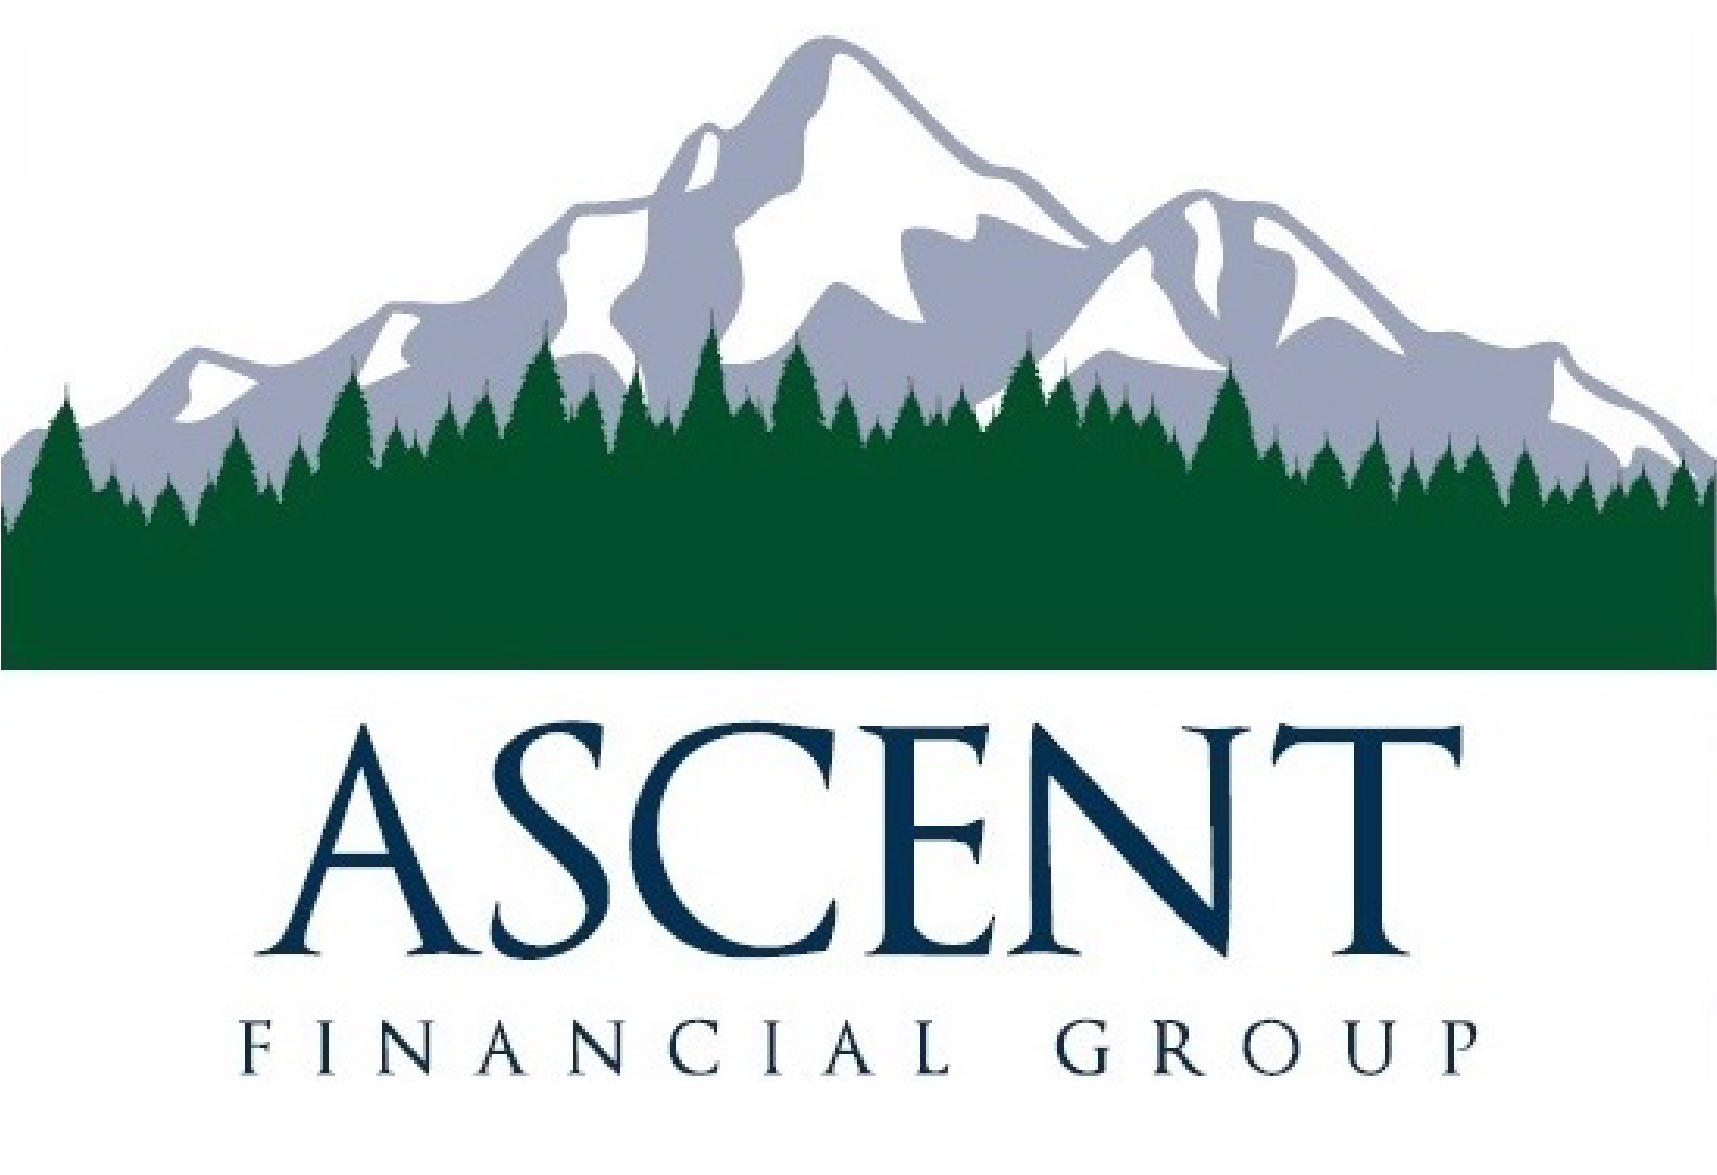 Ascent Financial Group